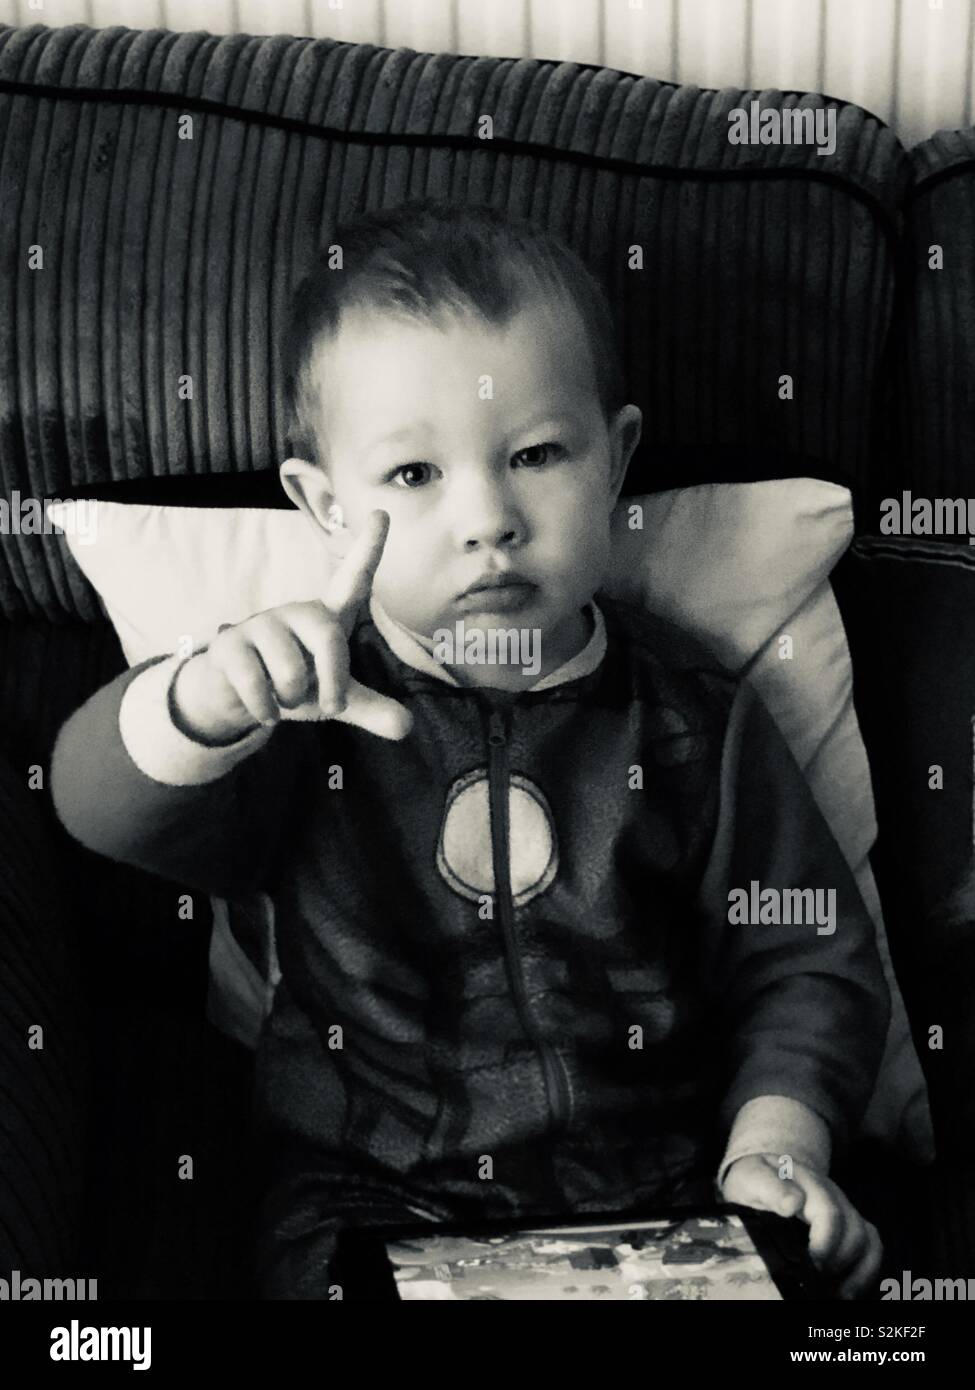 Boy making L loser sign looking serious black and white - Stock Image